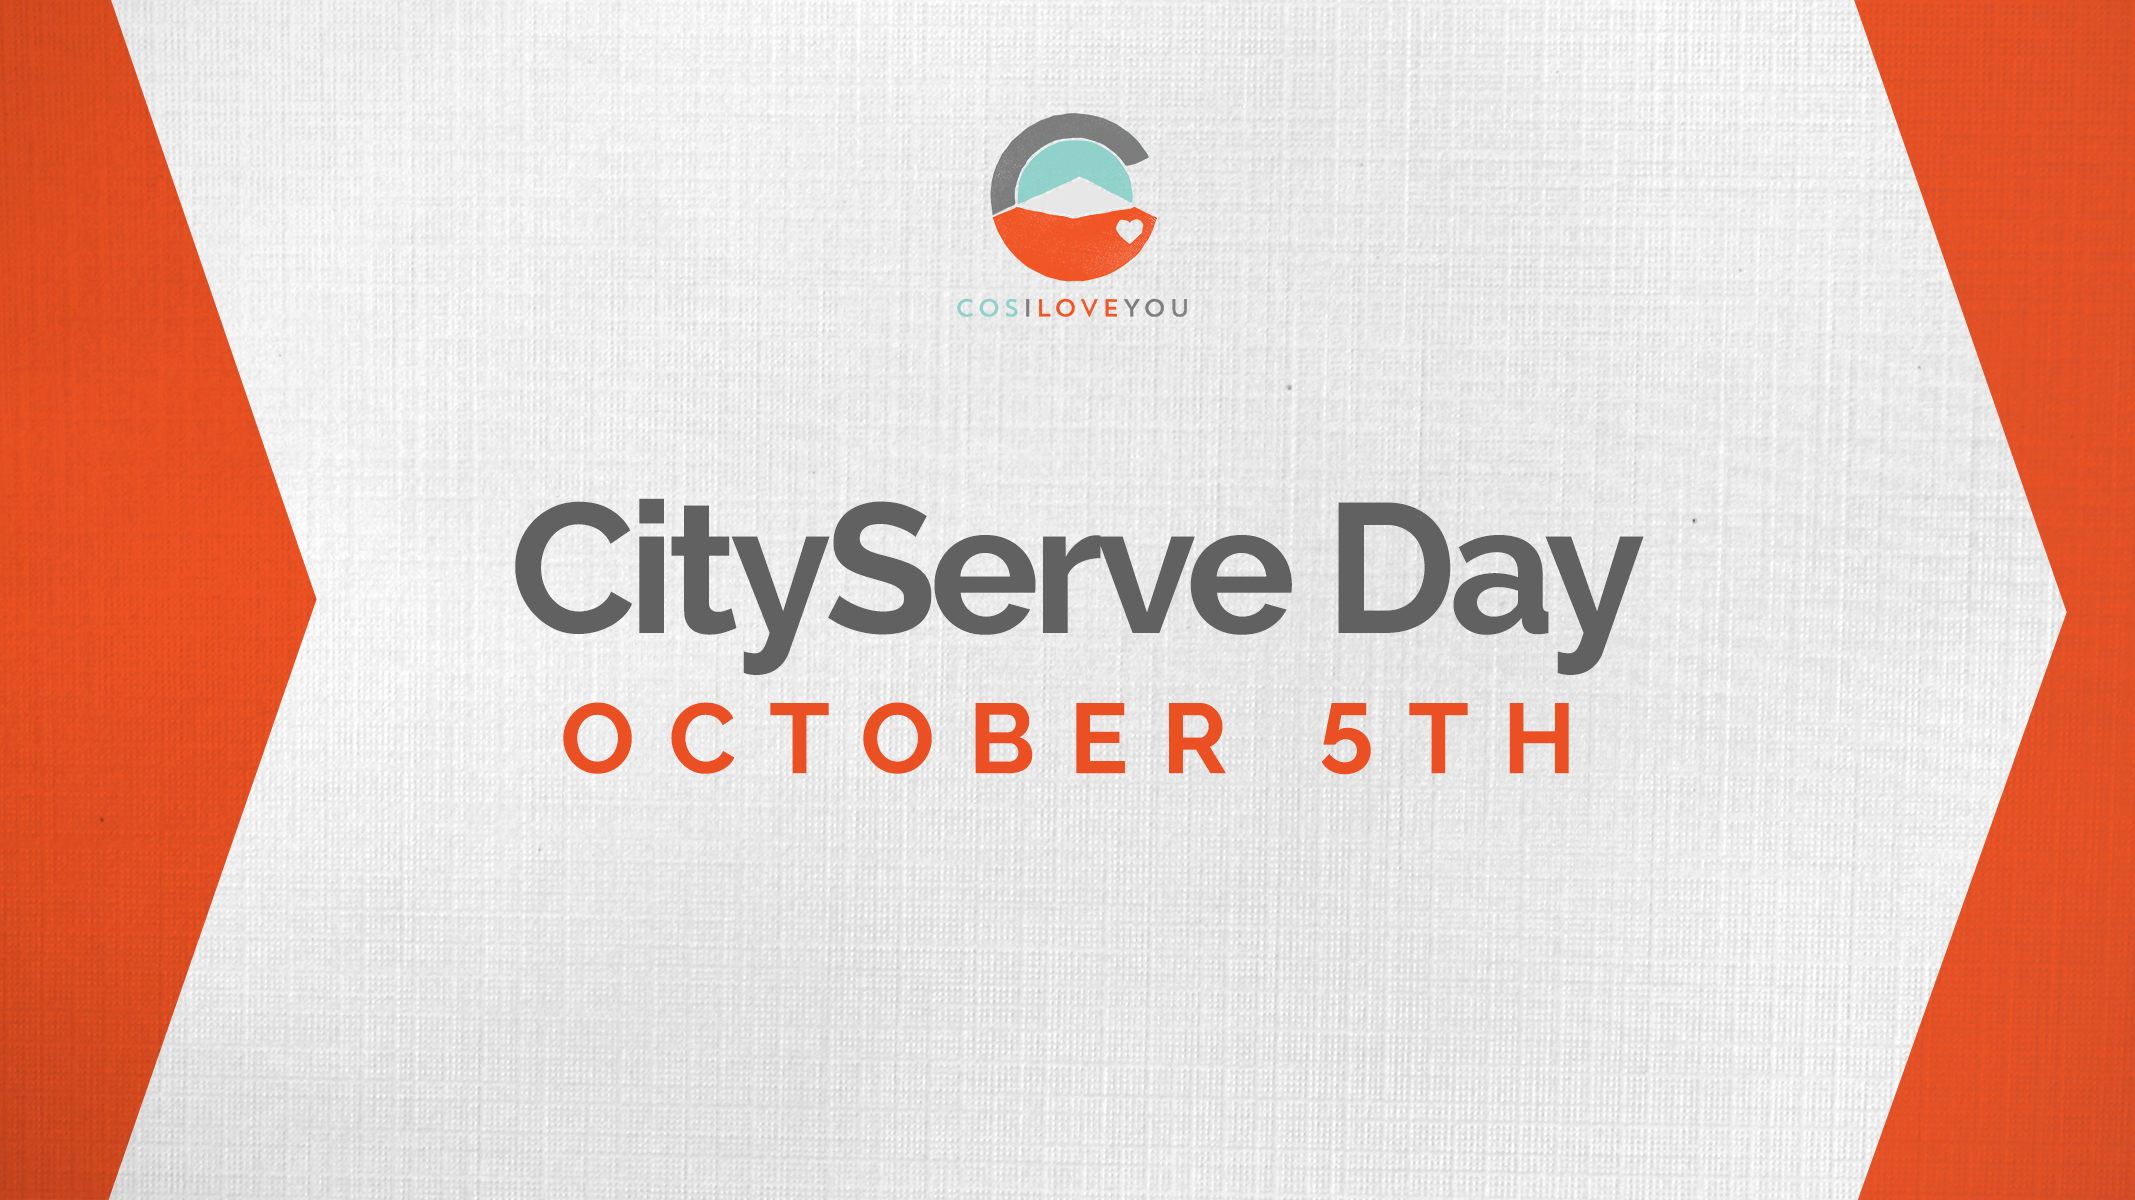 Slide_CityServe-Day_Oct5th.jpg